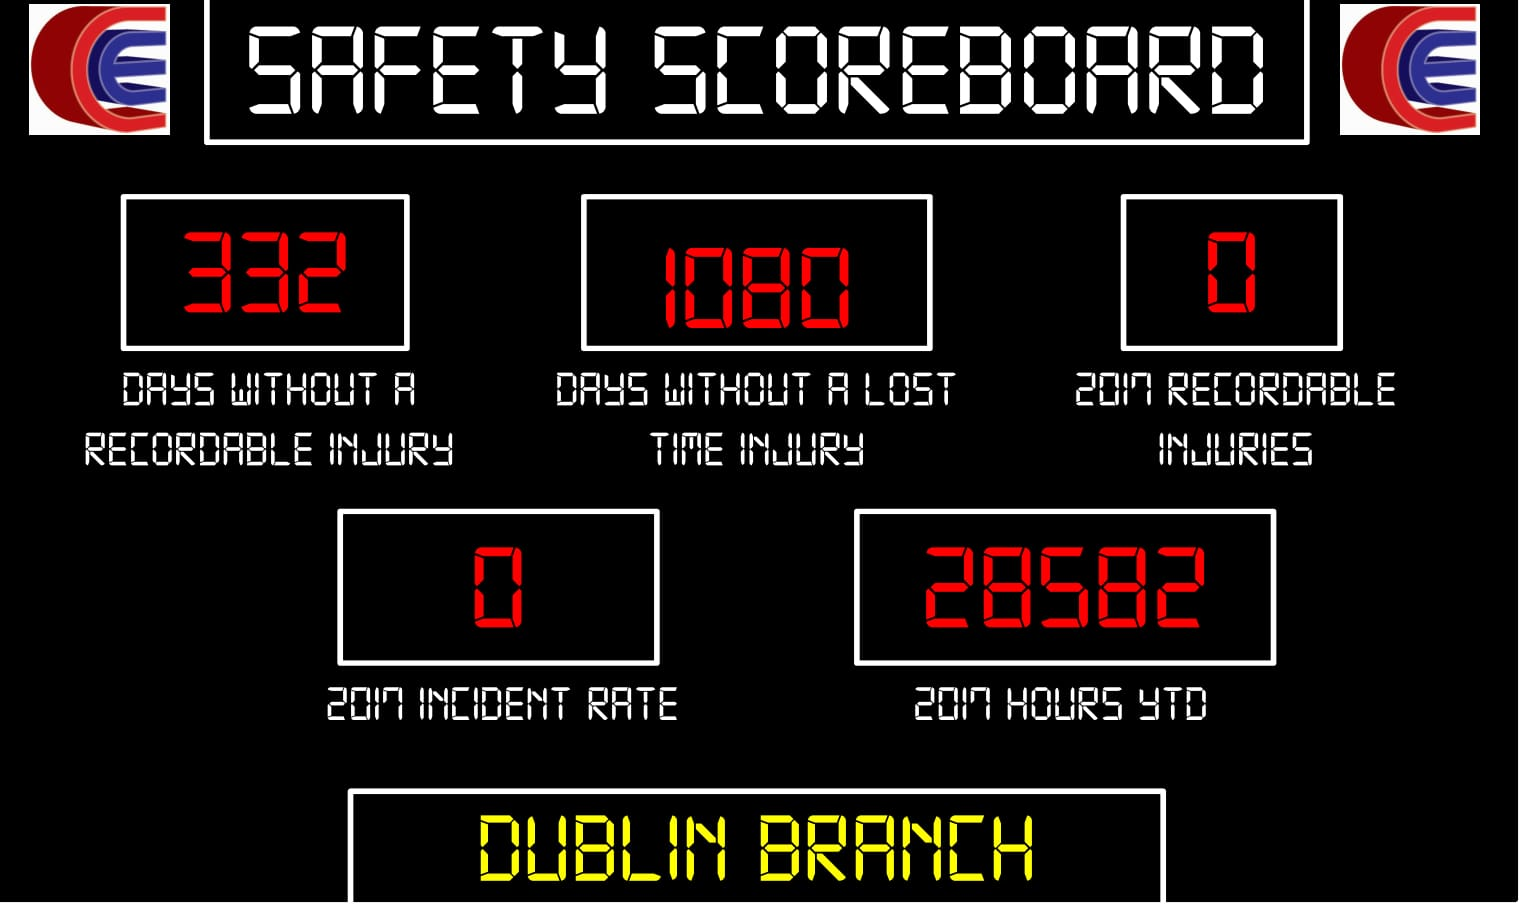 Safety Scoreboard-3